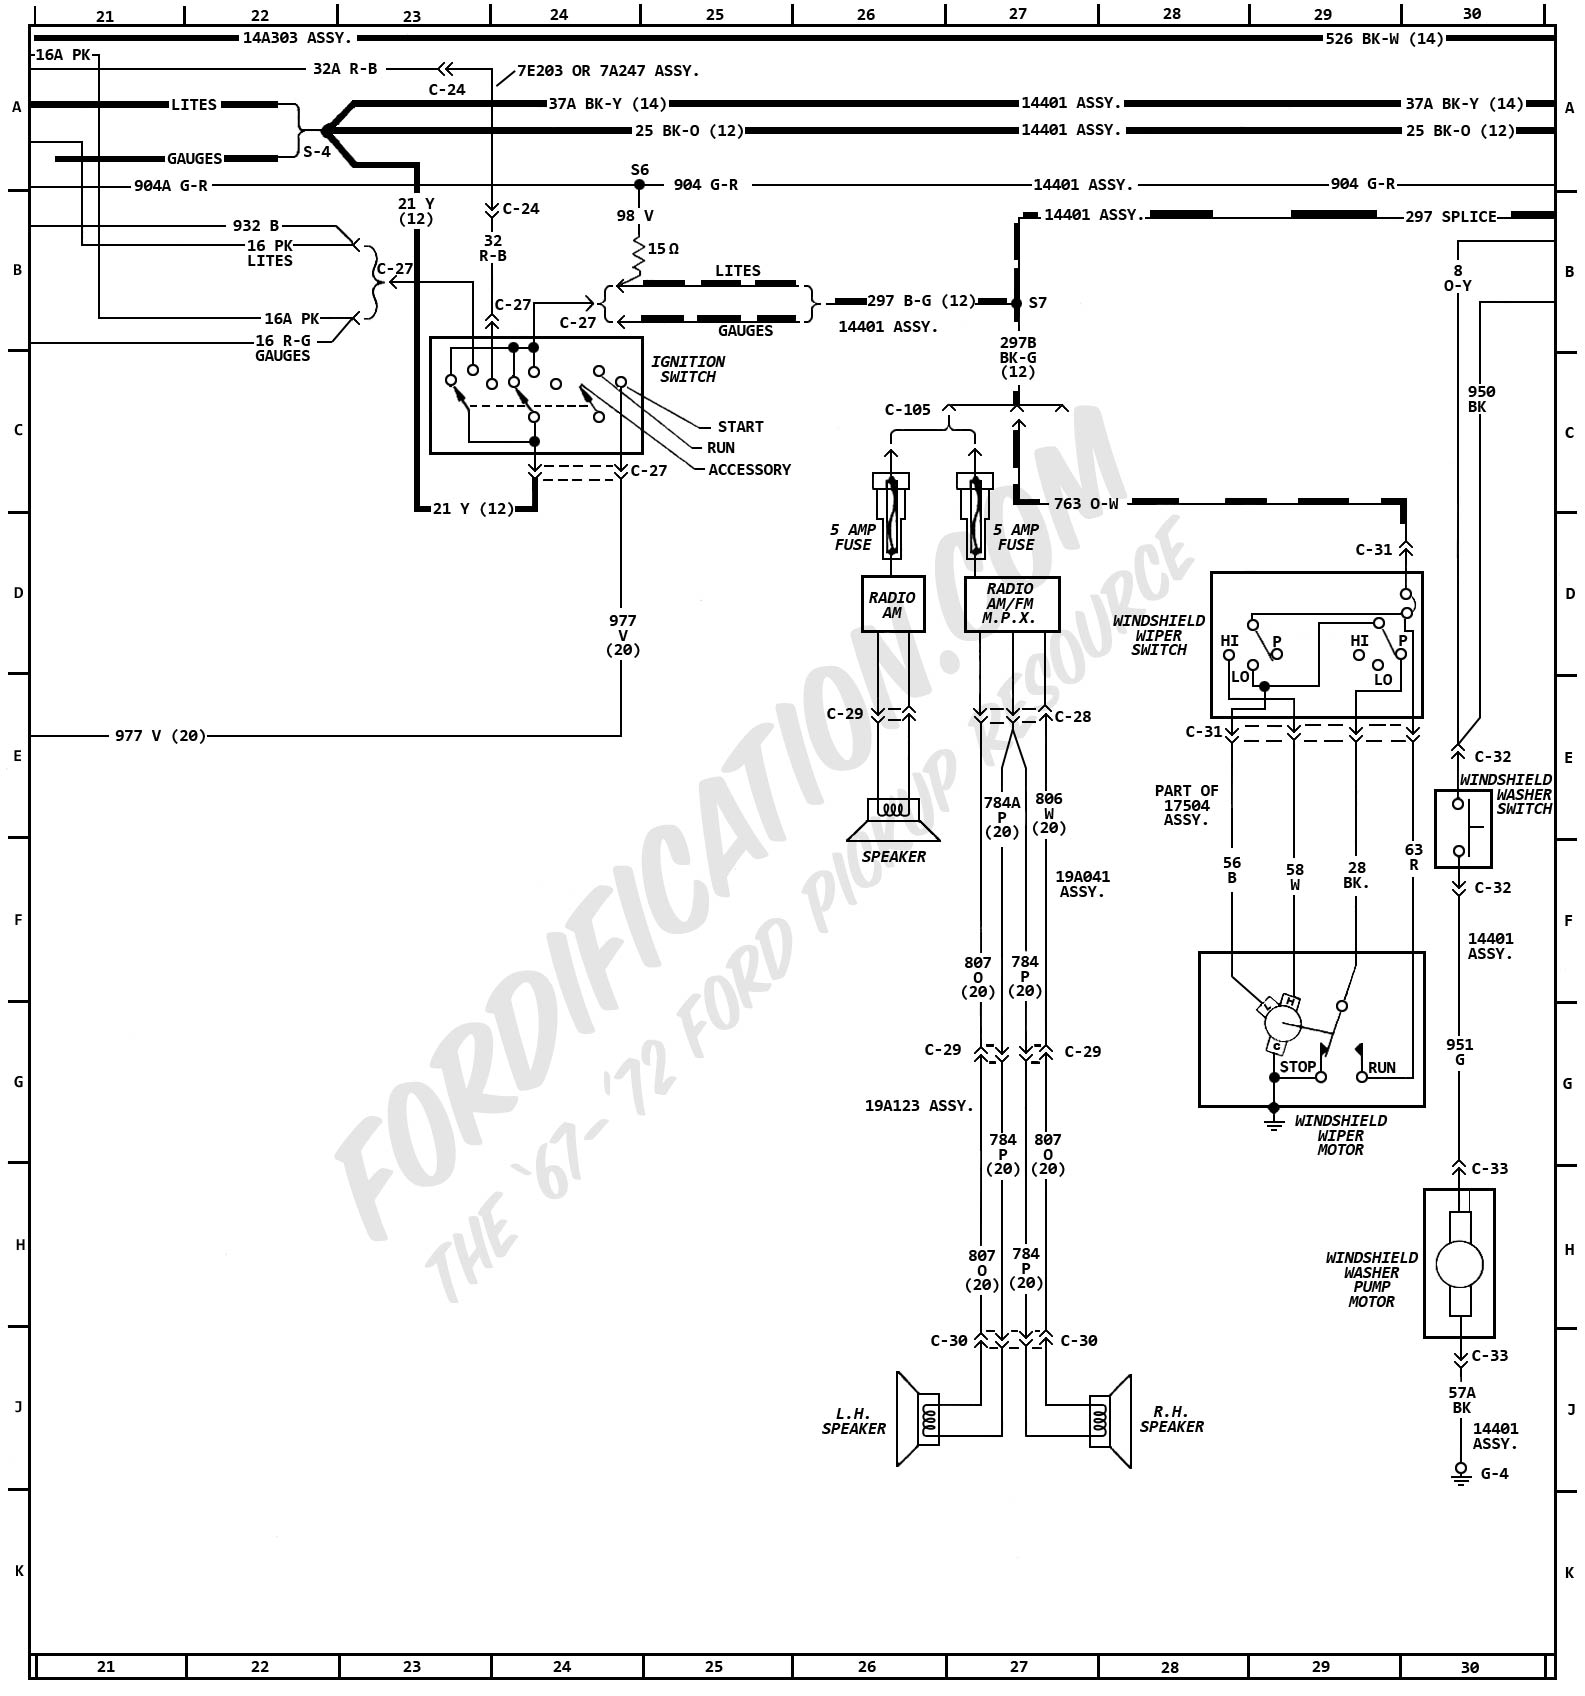 72 ford f100 dash wiring diagram 480v 3 phase motor starter stock radio power source the fordification forums